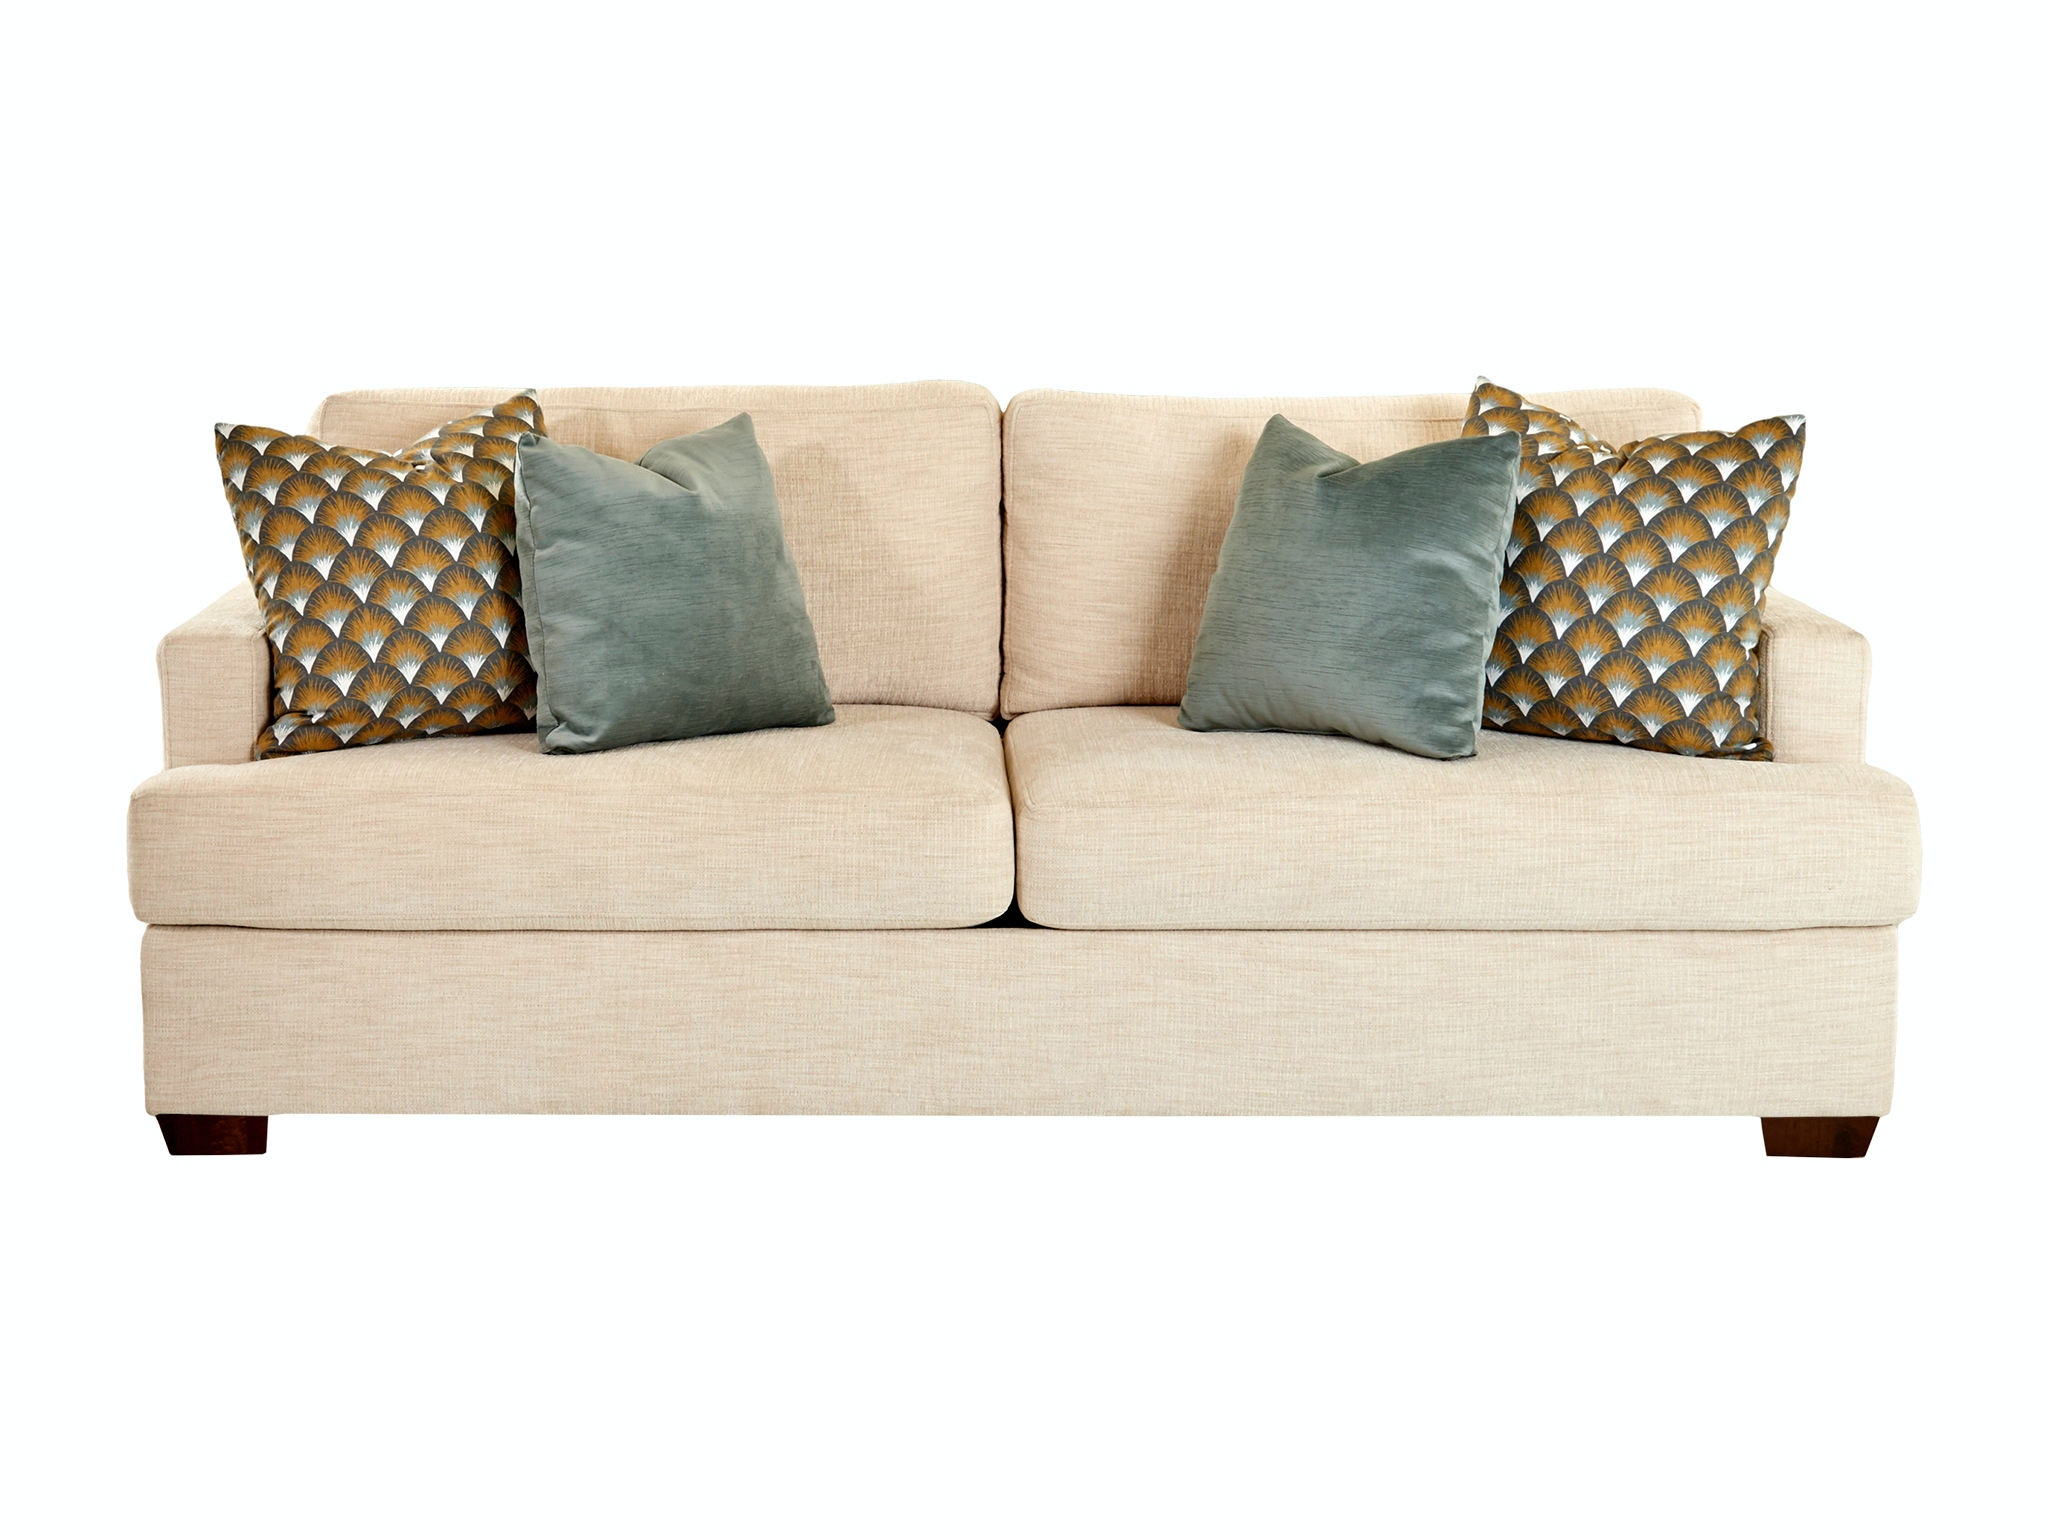 Trisha Yearwood KARALYNN Sofa K15600 S